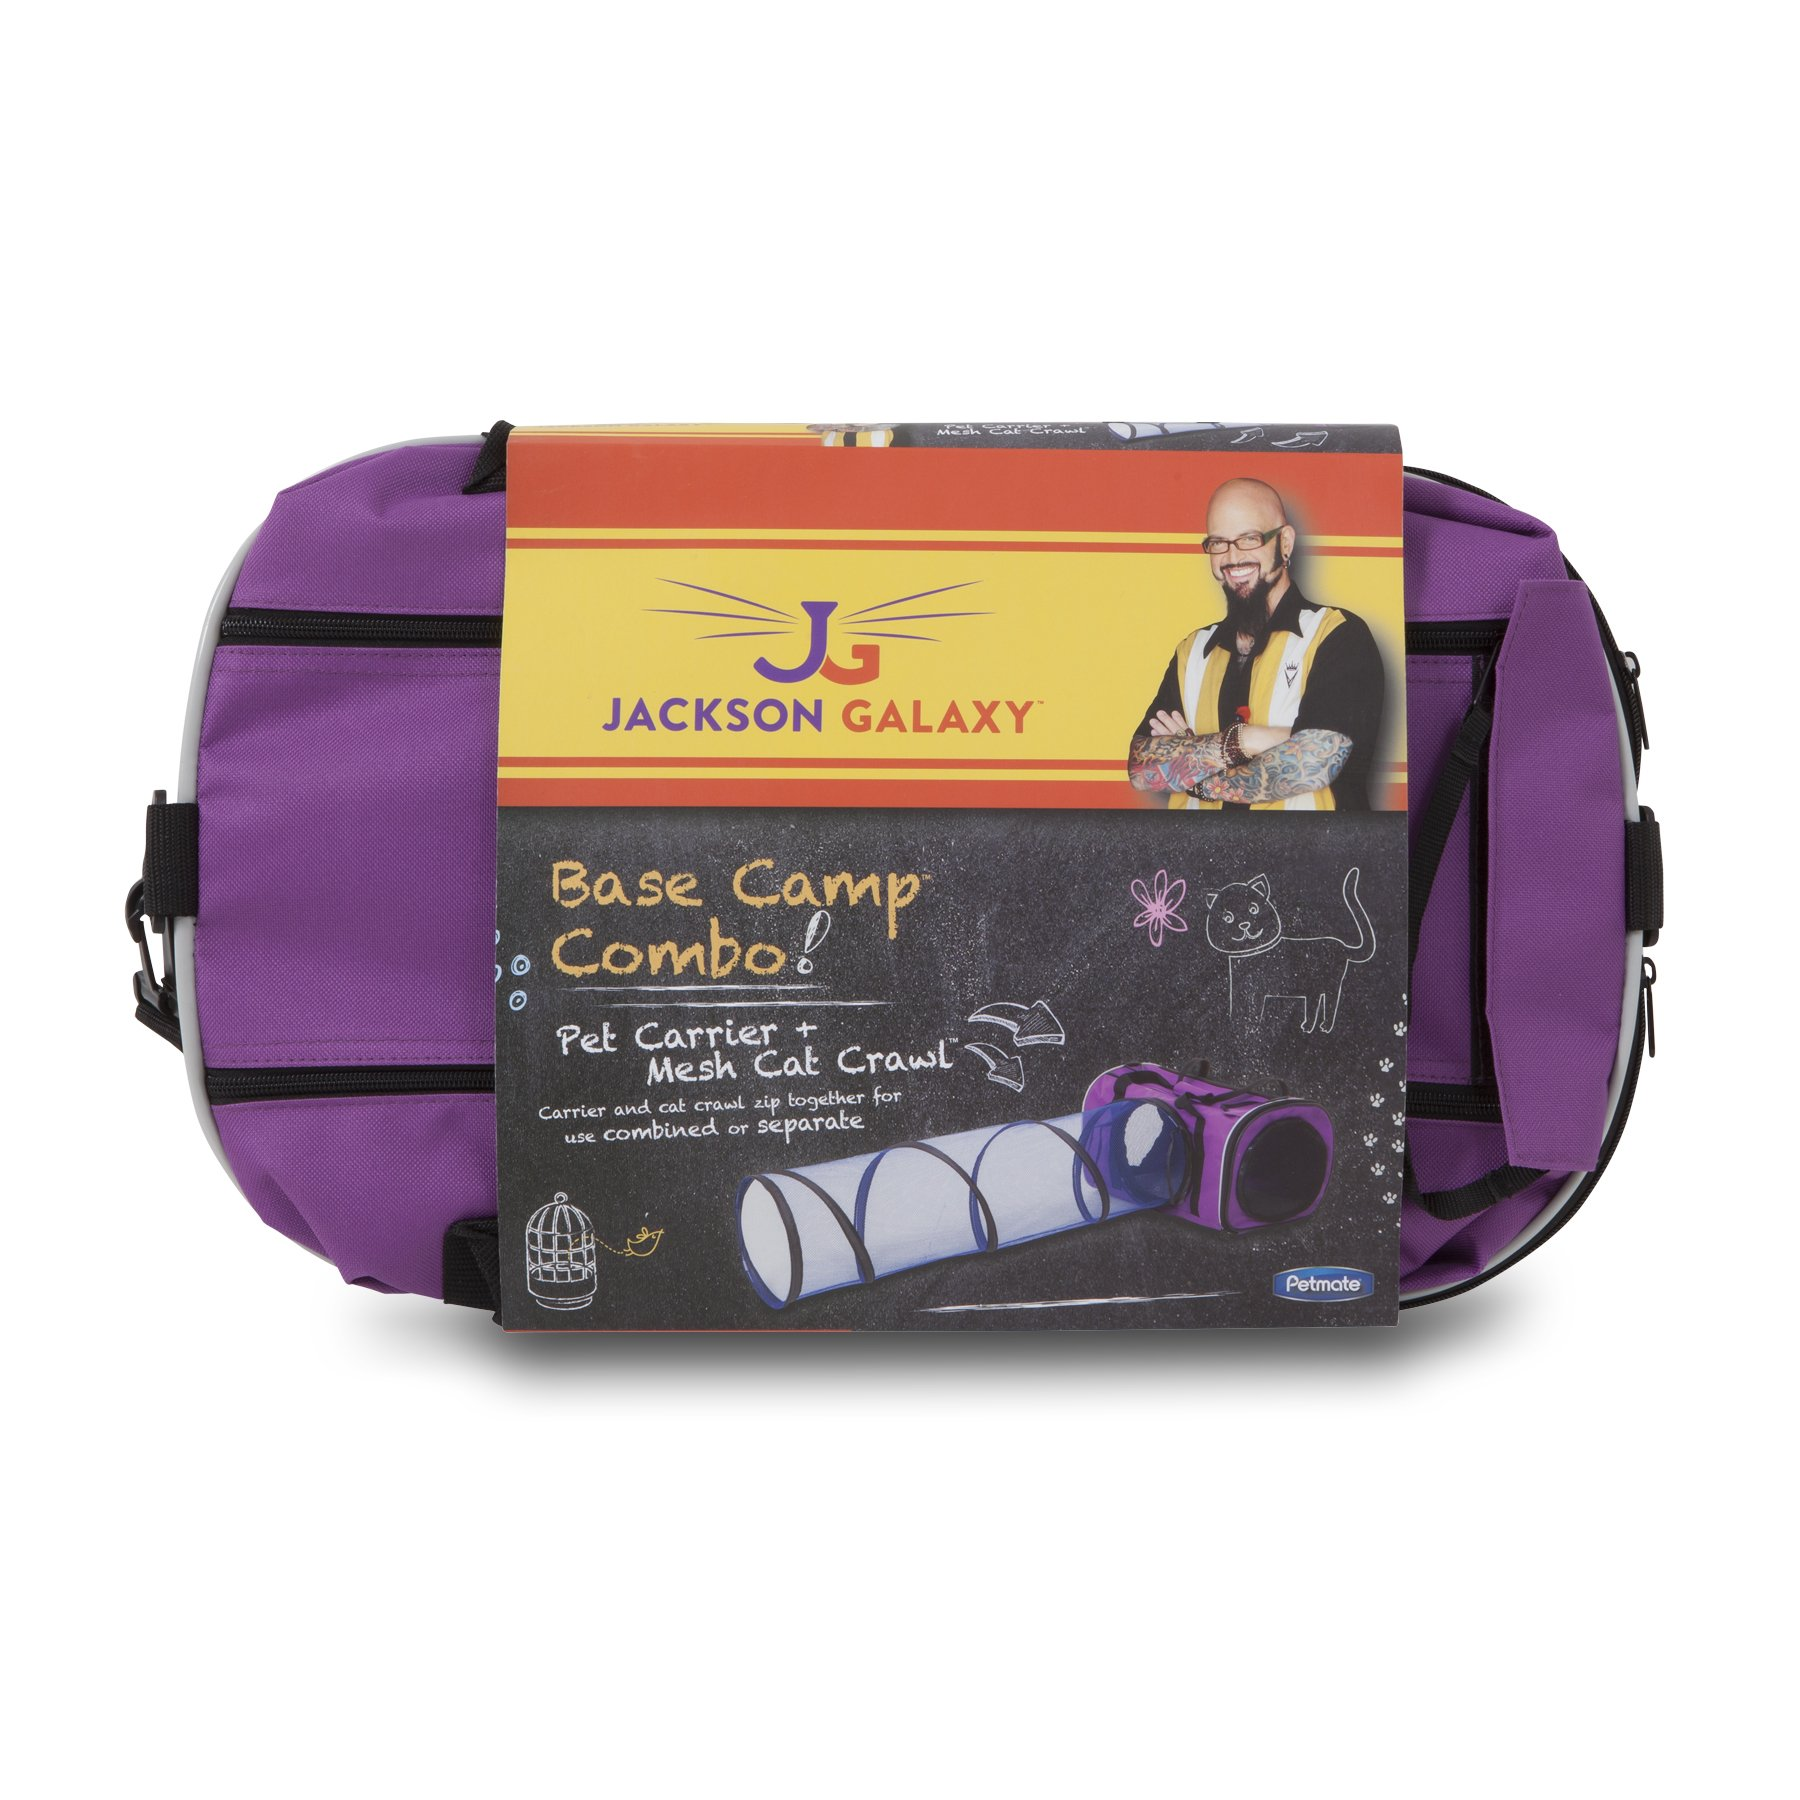 Petmate Jackson Galaxy Base Camp Carrier with Mesh Tunnel by Petmate